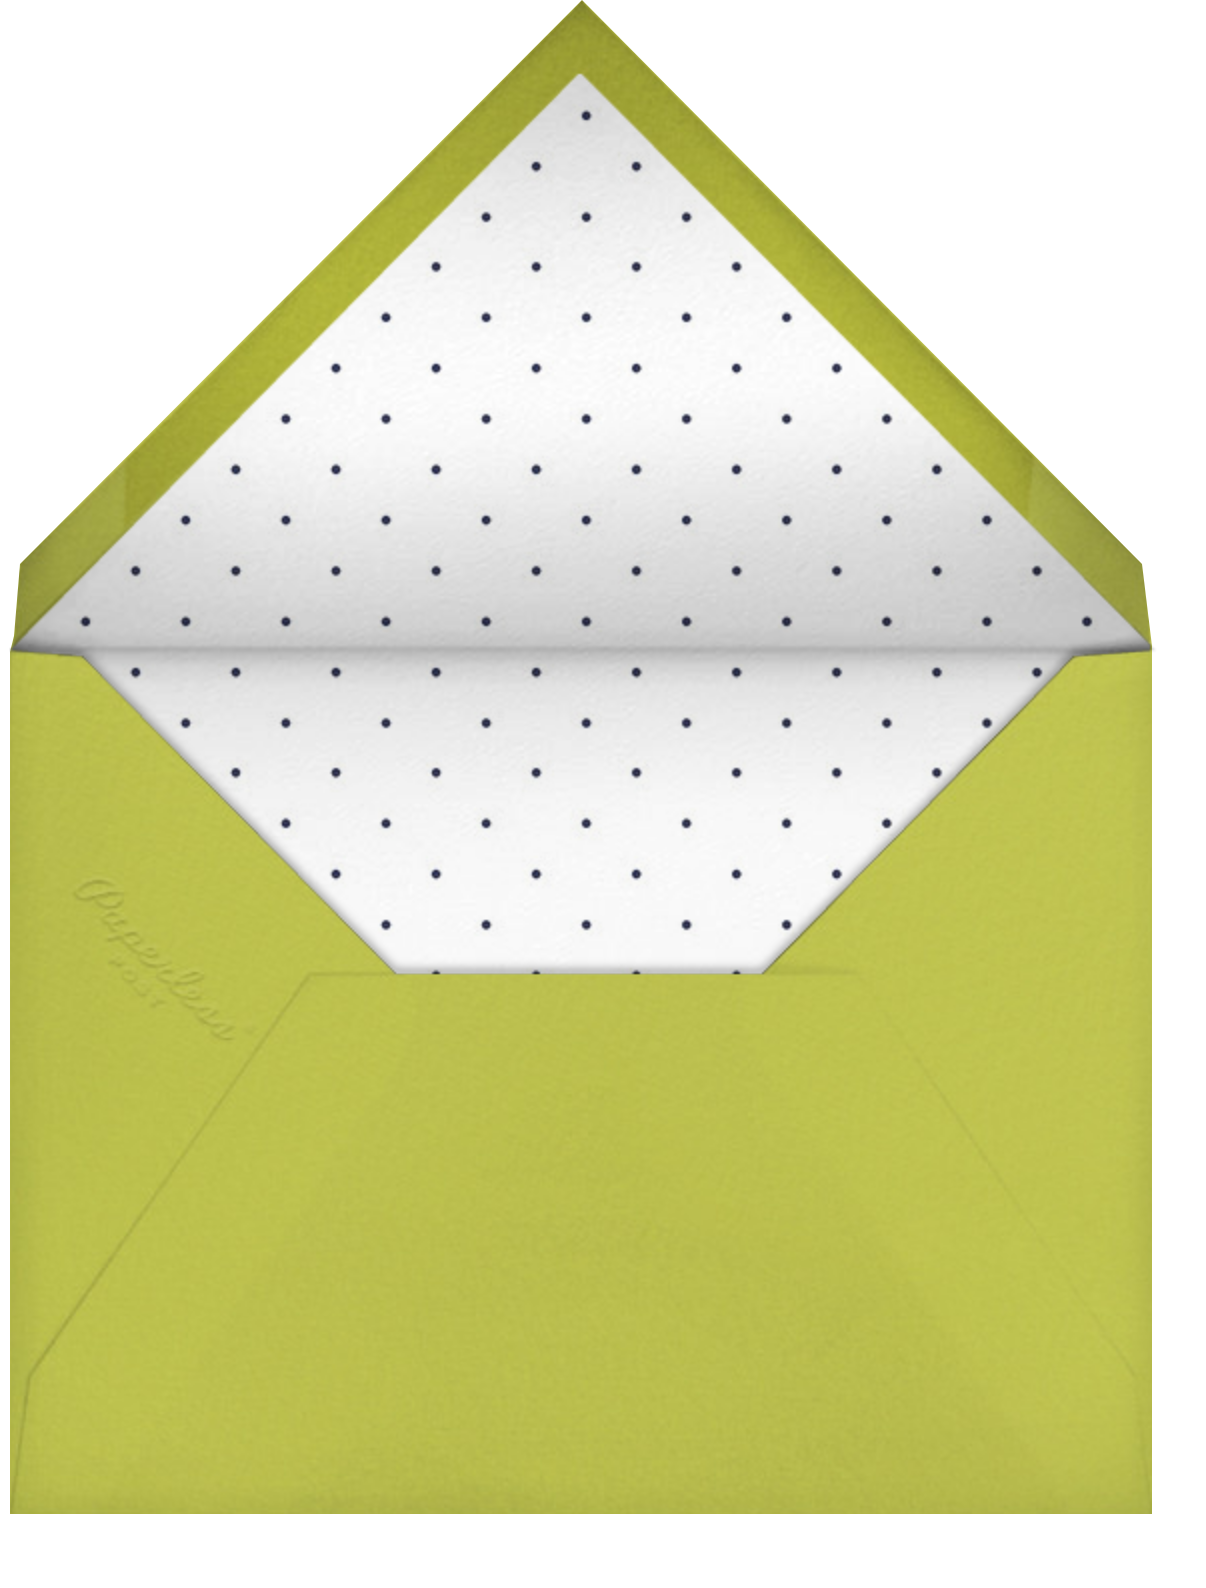 Baby, Baby - Pink - Cheree Berry Paper & Design - Envelope